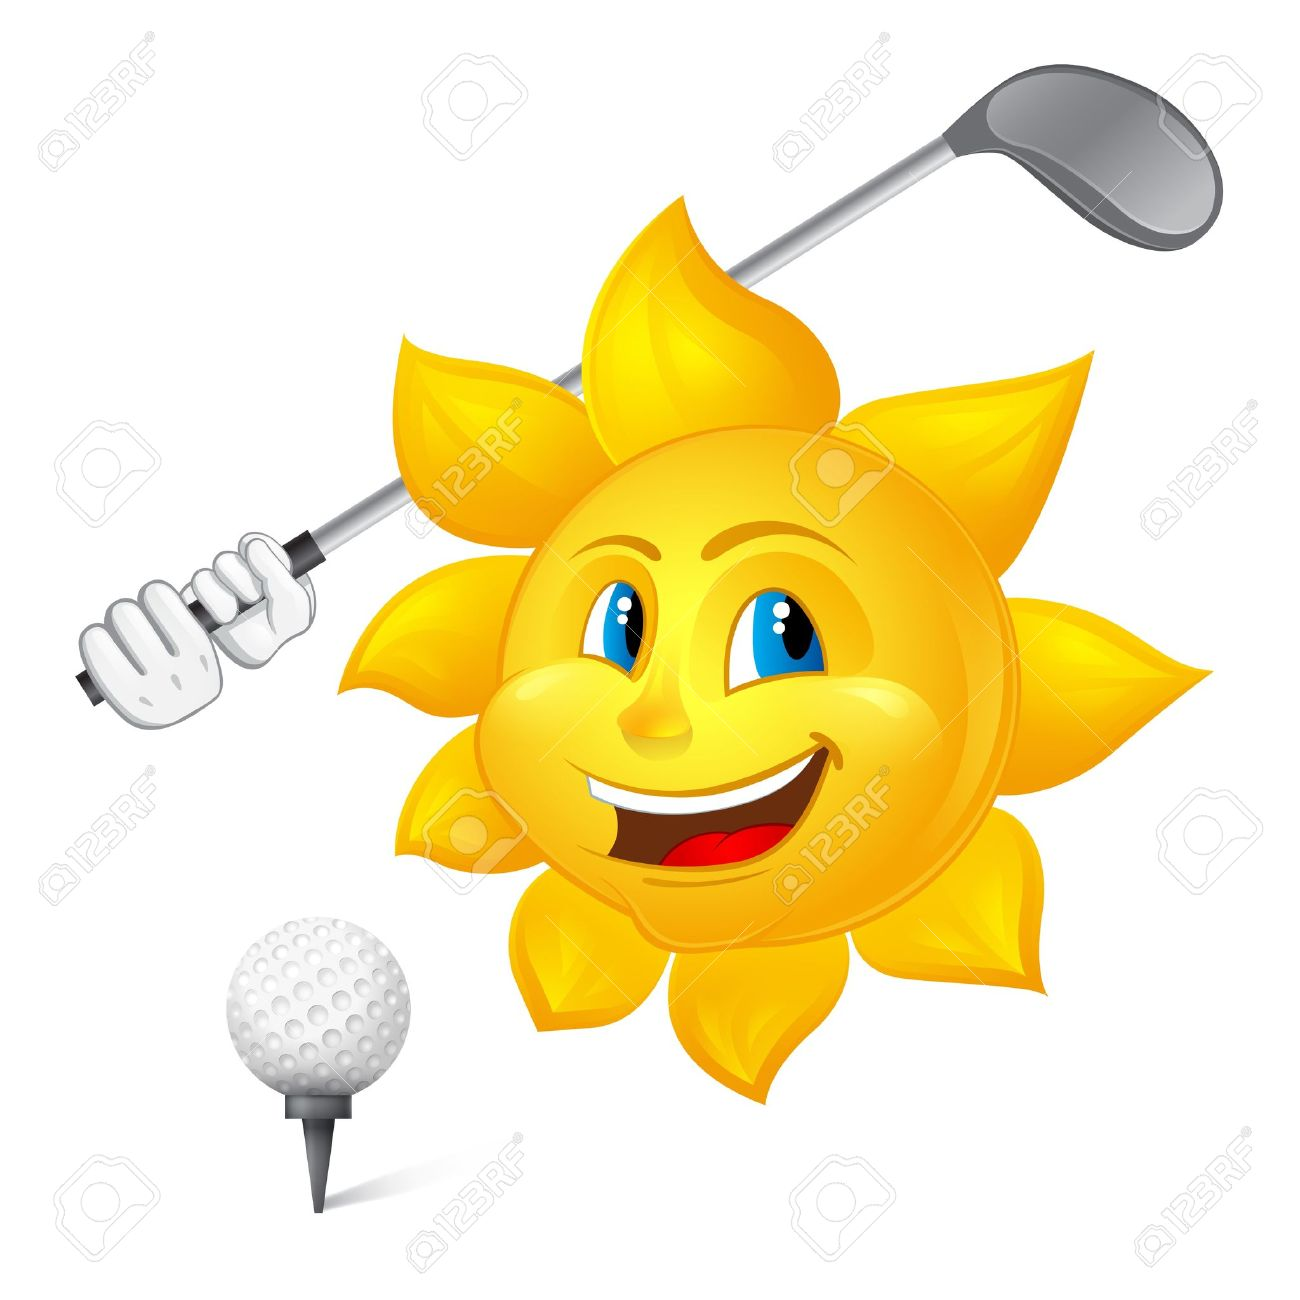 Image result for sun golf cartoon